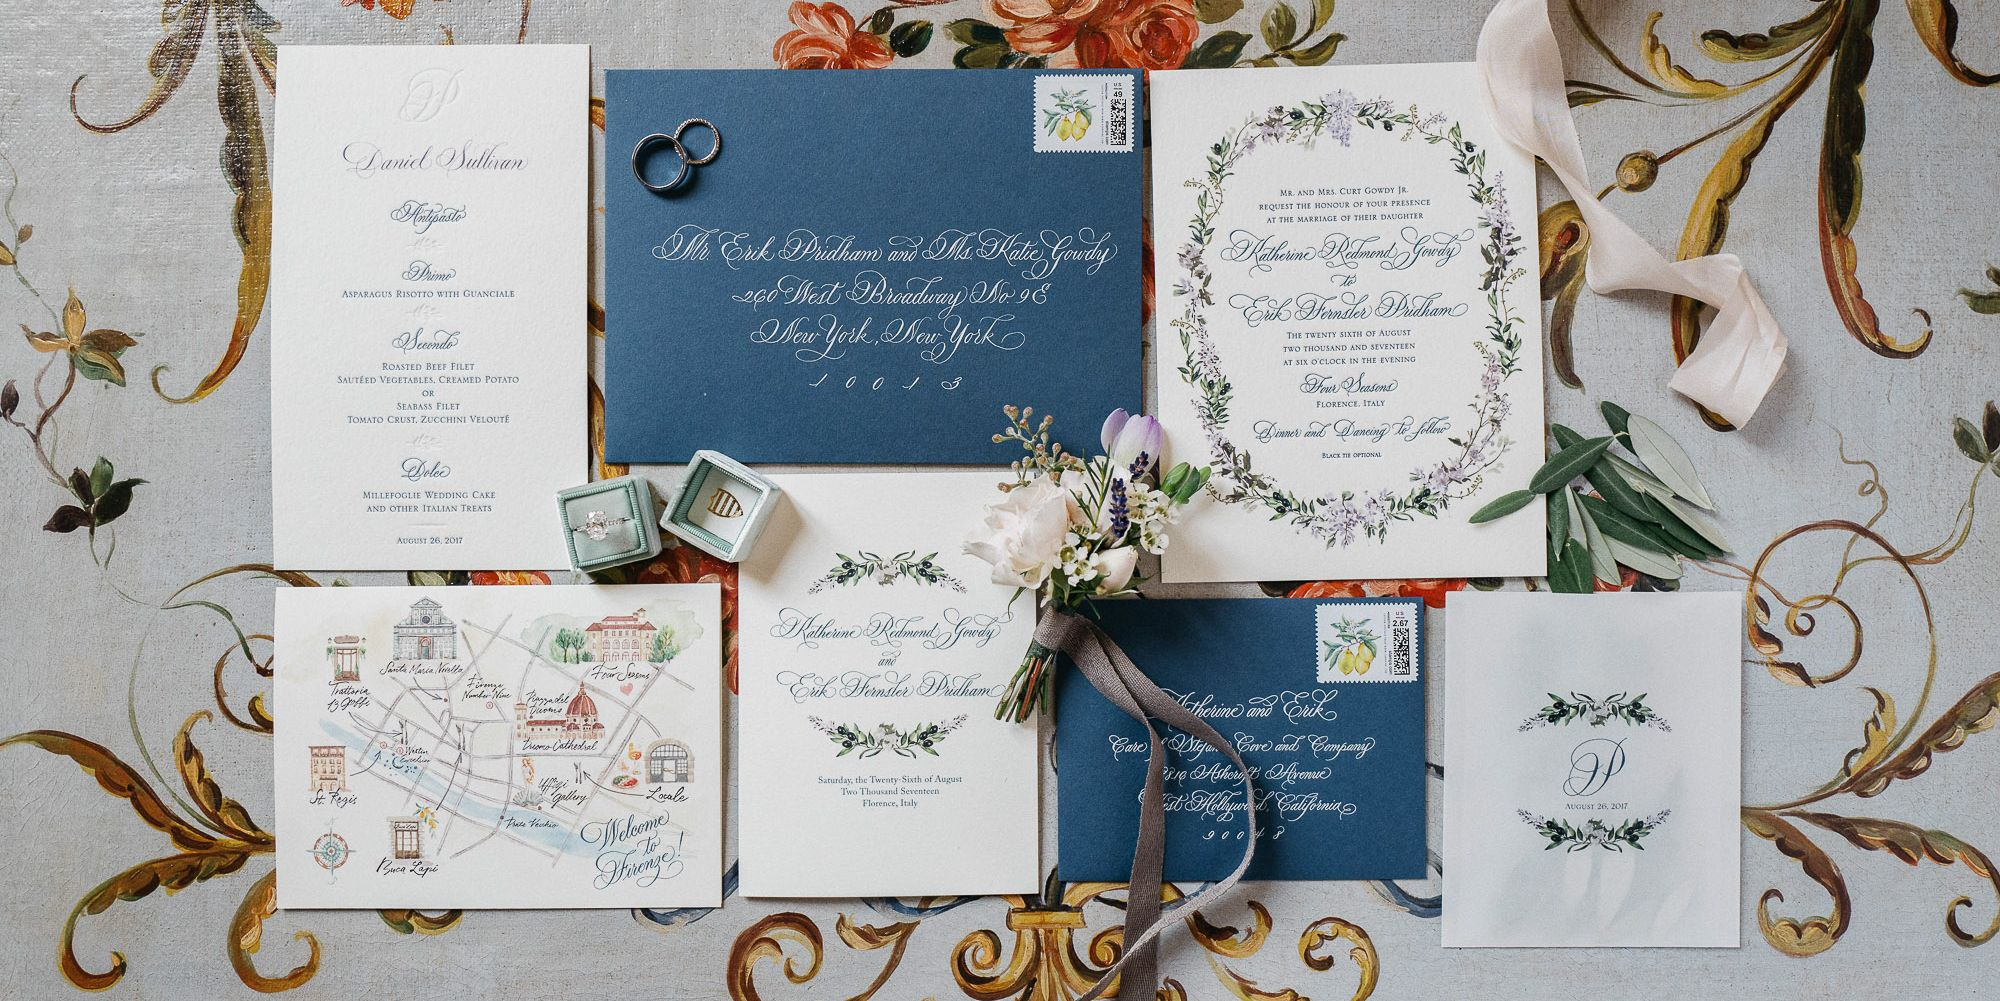 40 Elegant Wedding Invitations Ideas - Marriage Invitation ...